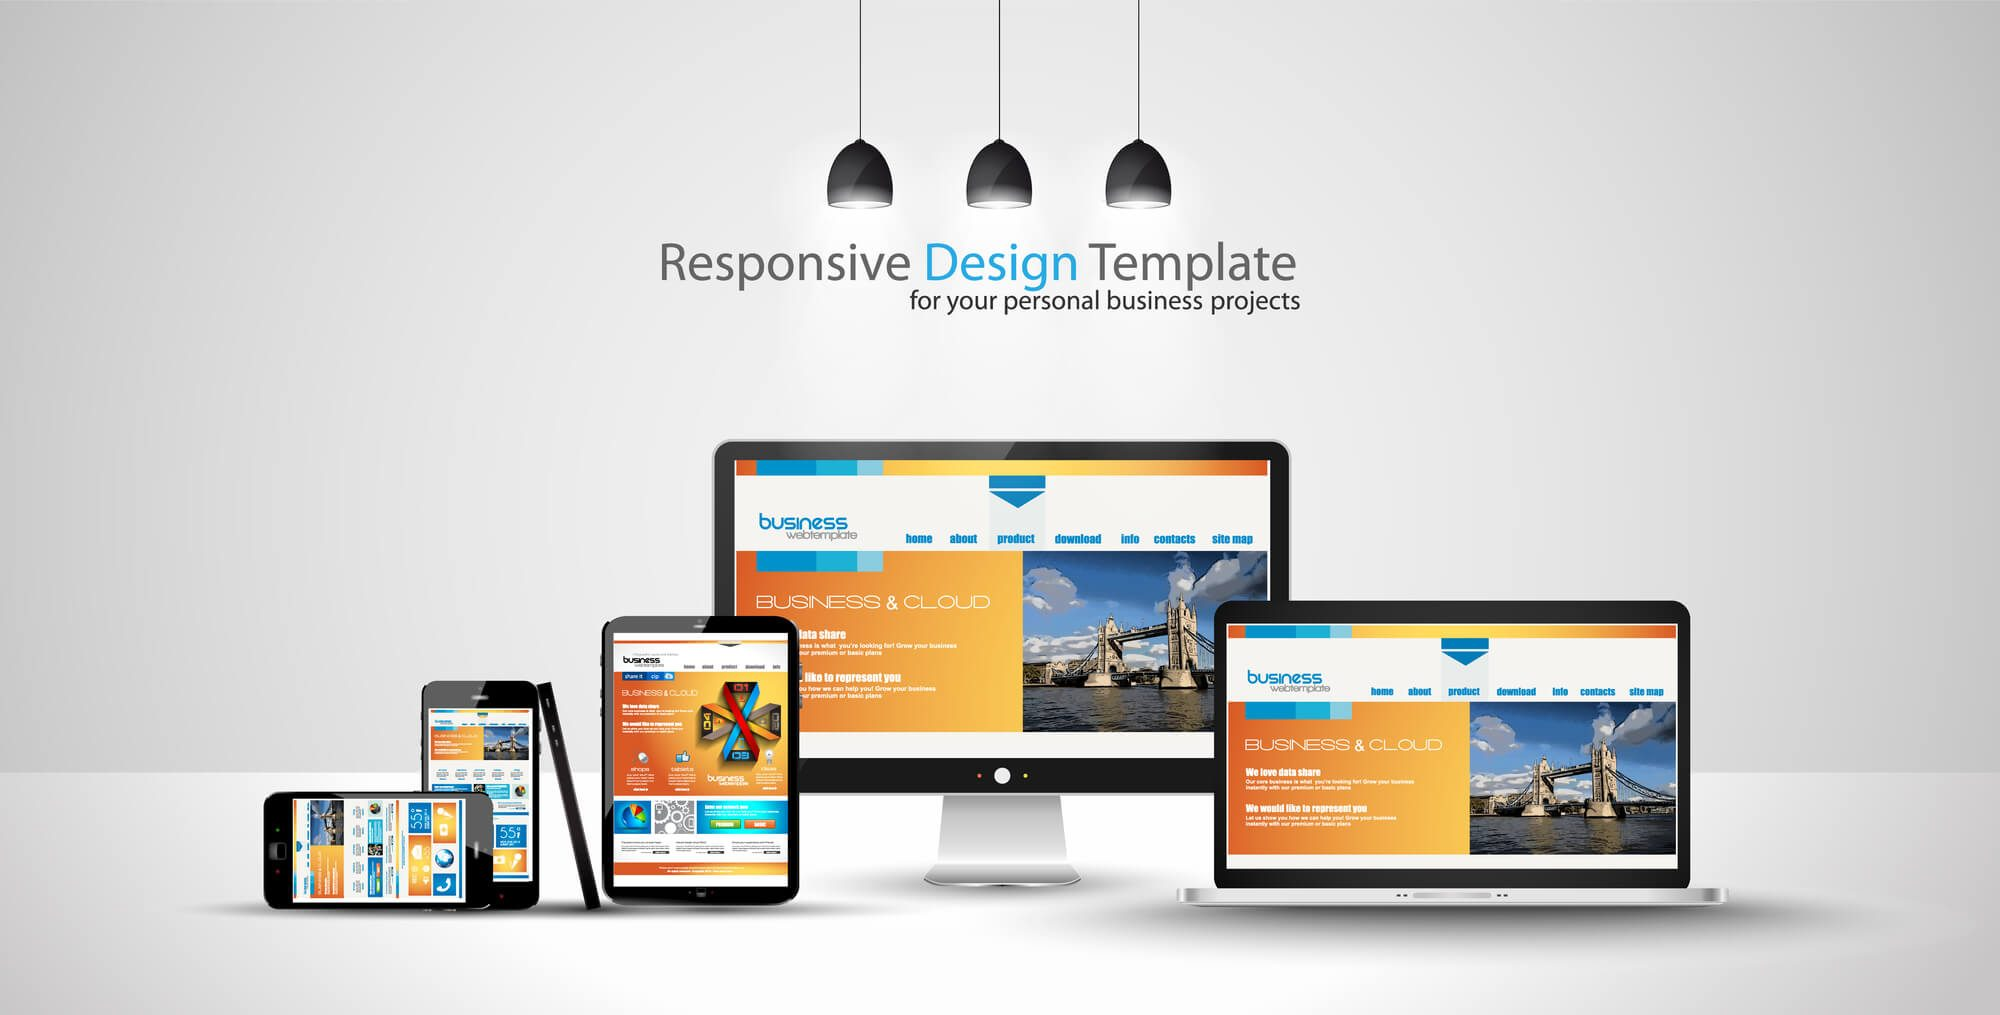 san diego afforadble website design services - The Ad Firm